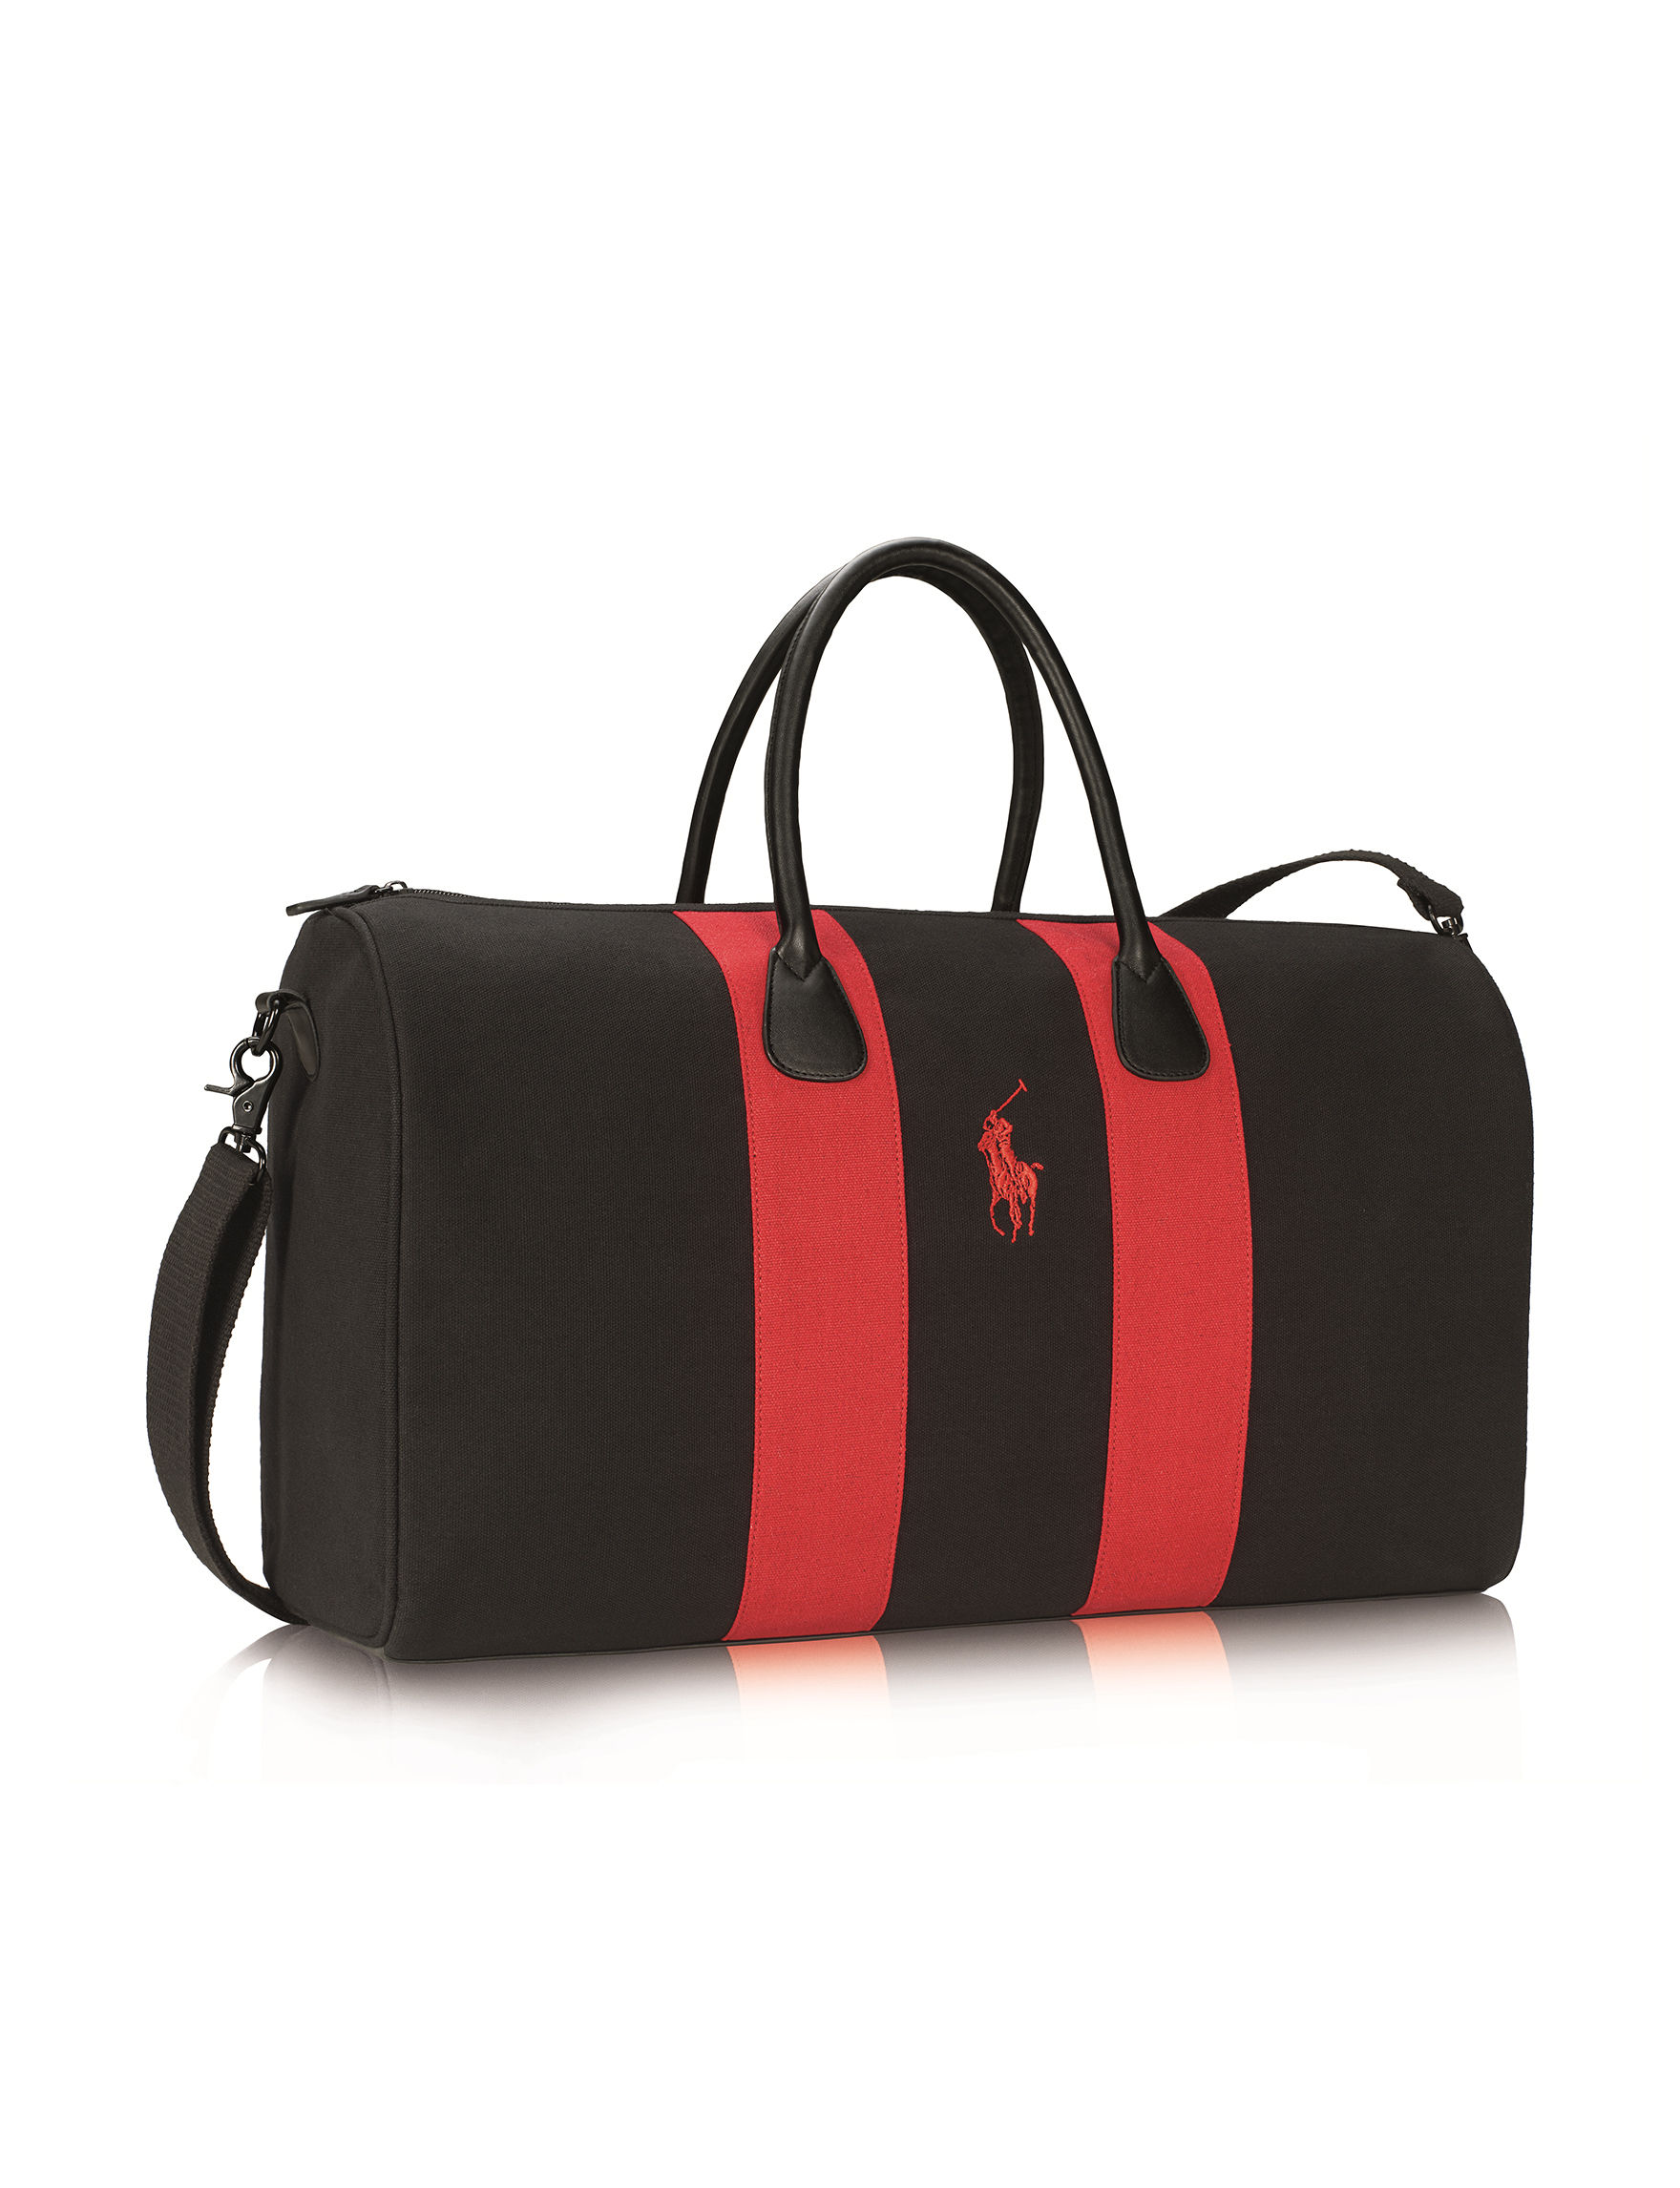 Polo Ralph Lauren Duffle Bag Gift with Purchase | Stage Stores